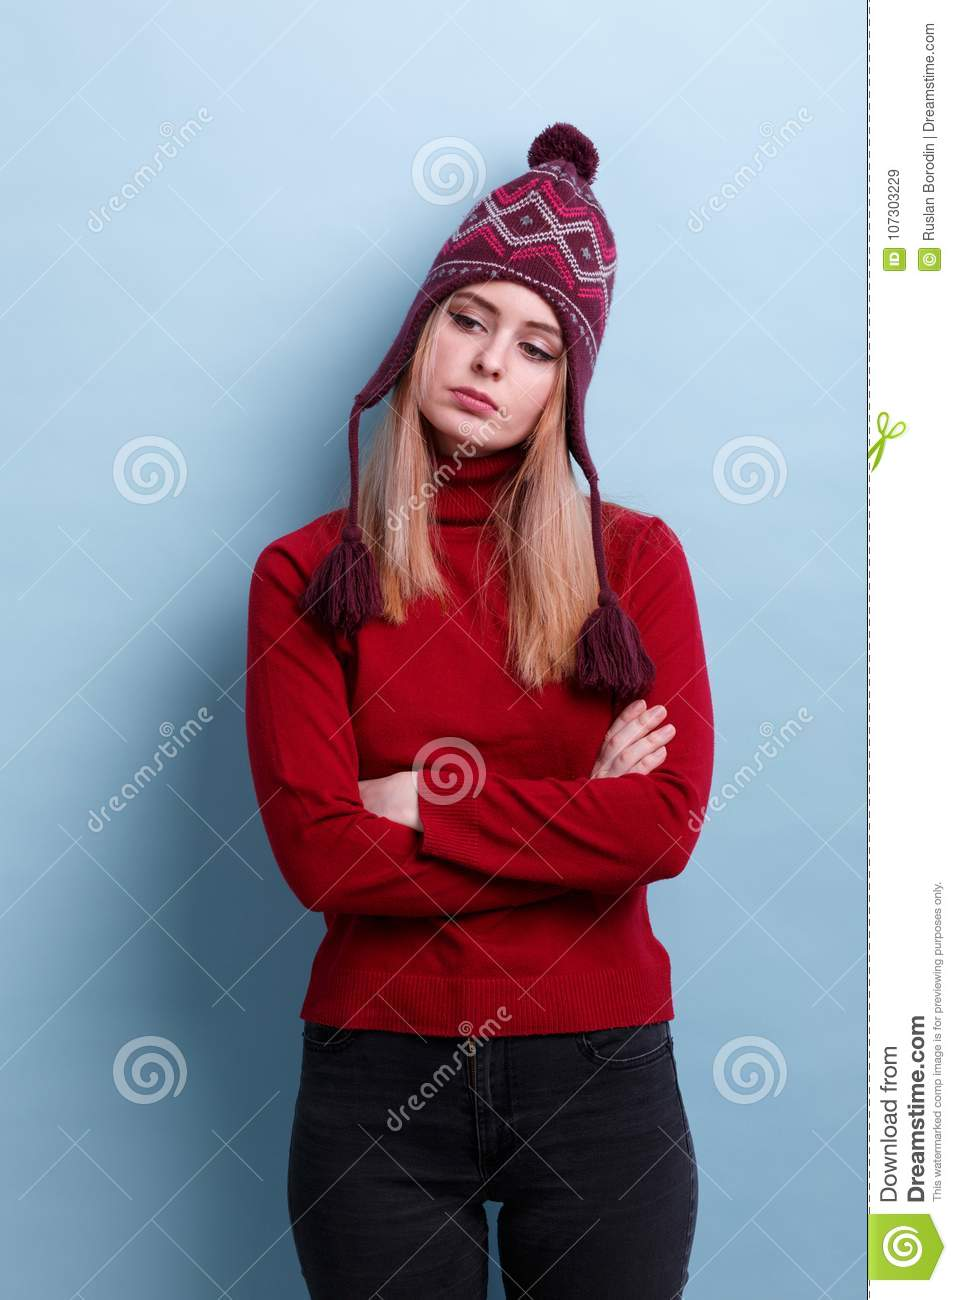 A Frustrated Girl, In A Warm Hat And Sweets, Stands Cross